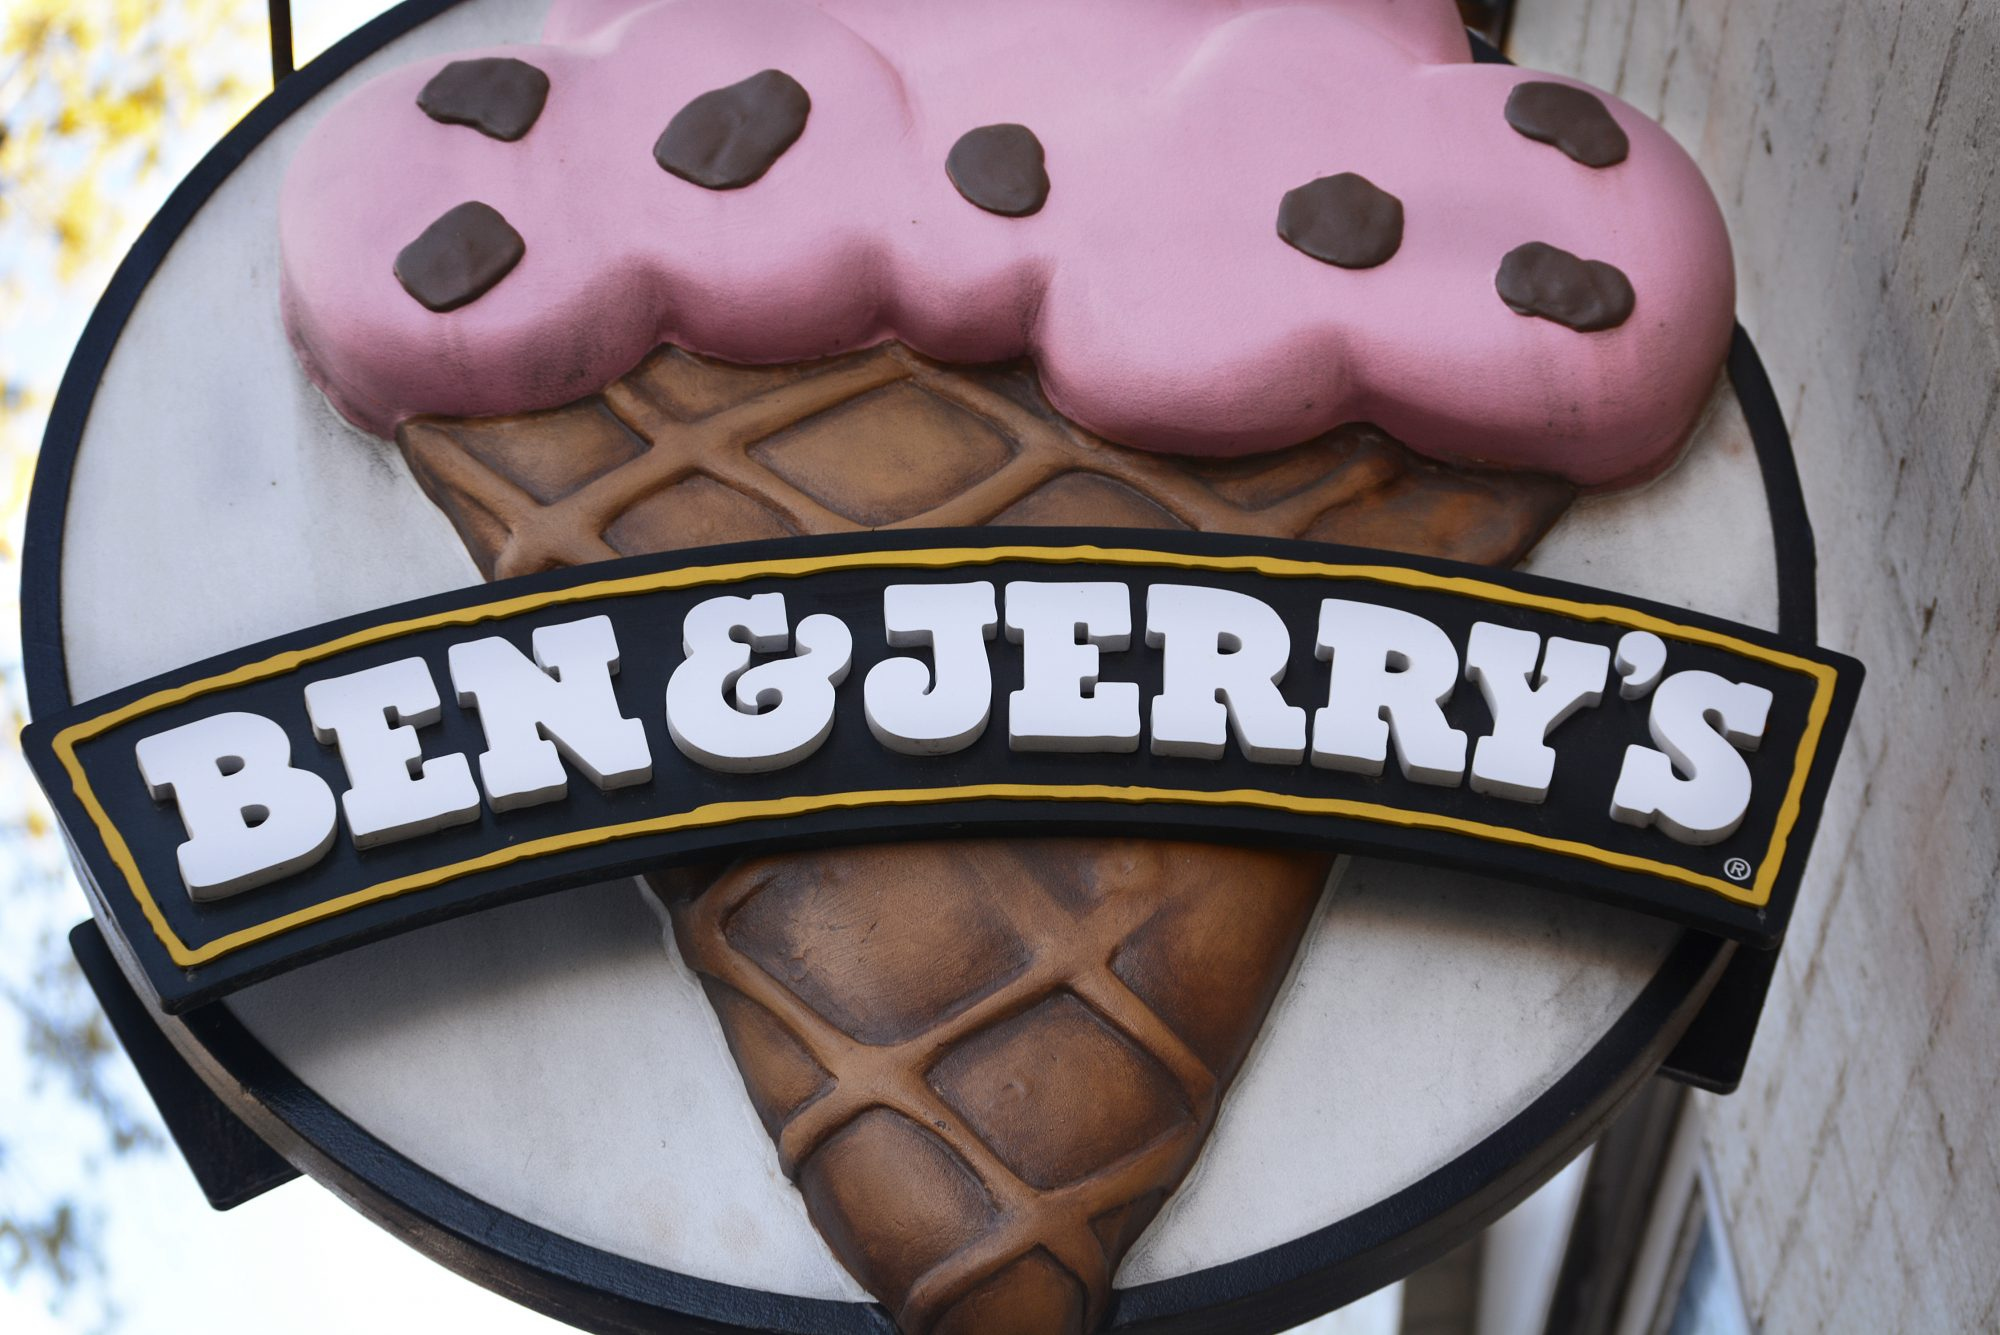 060520_Ben and Jerrys Sign